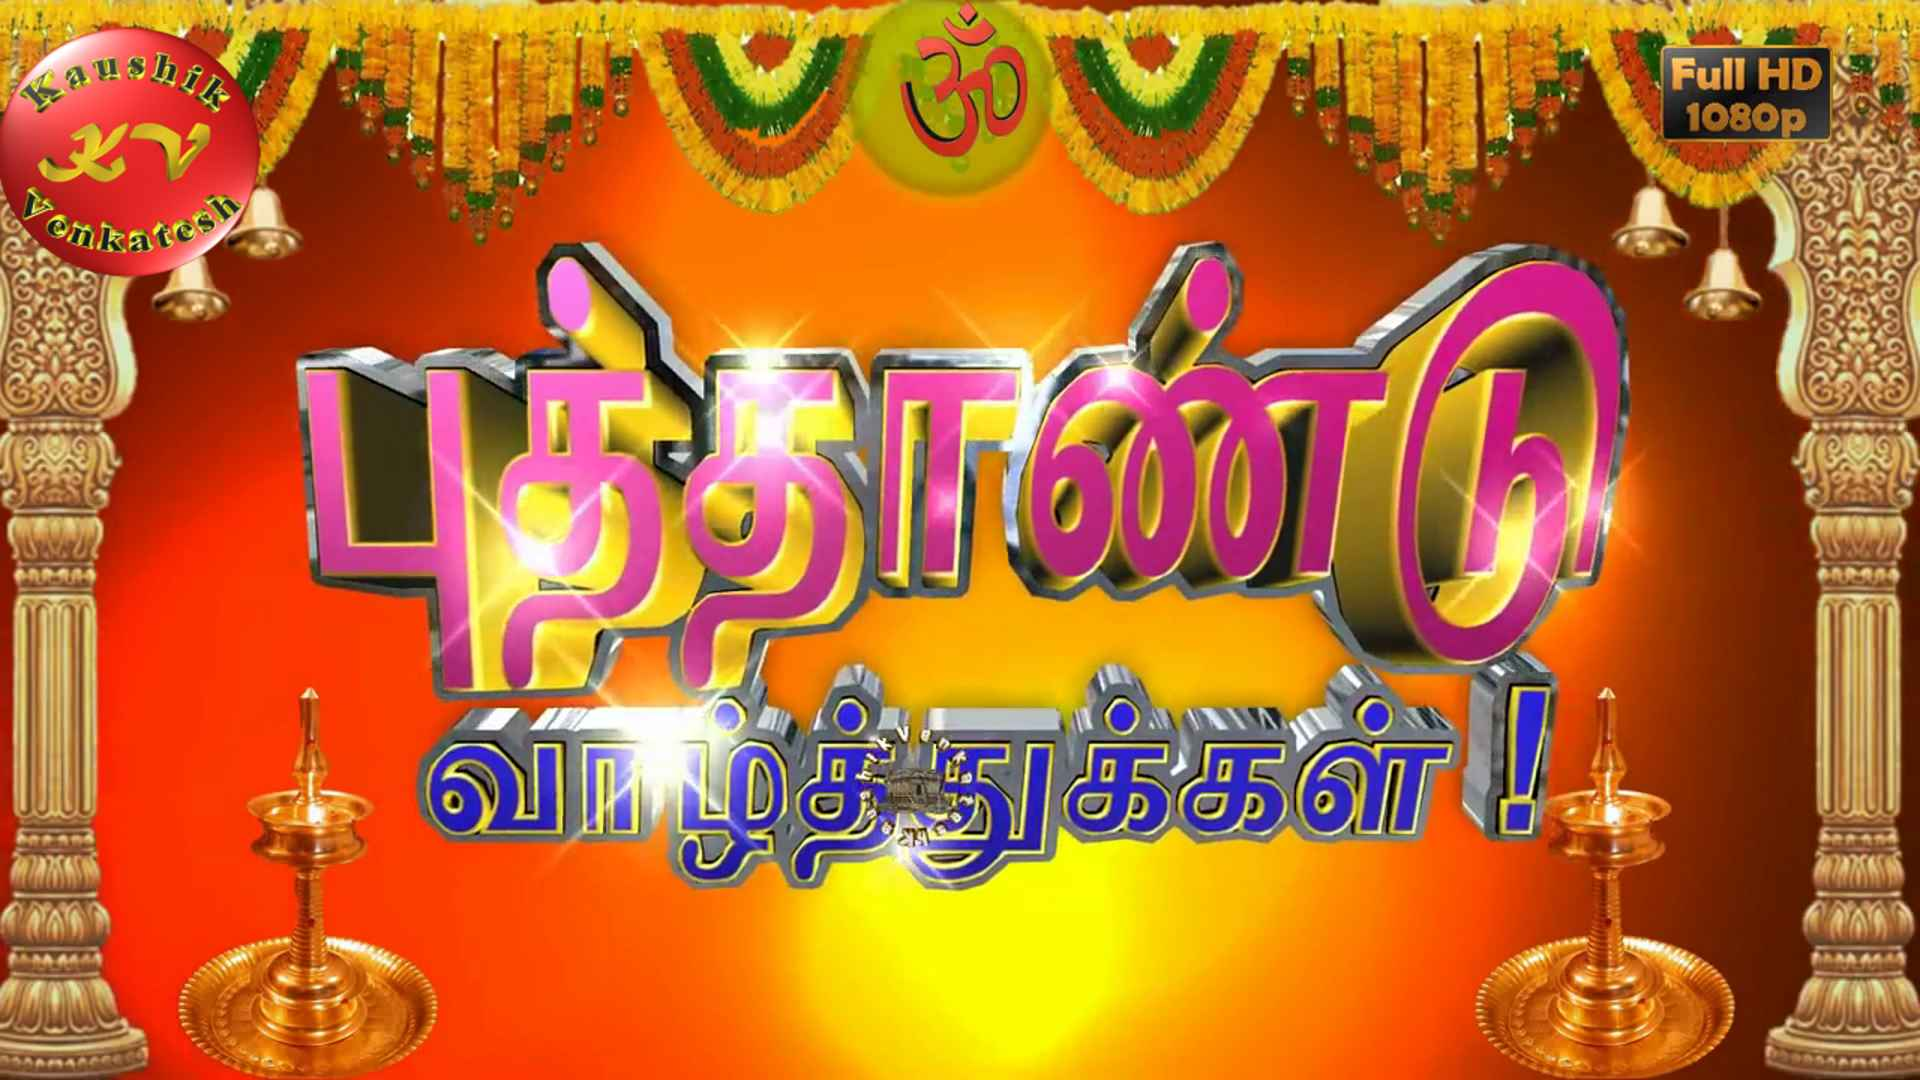 Tamil New Year Images HD